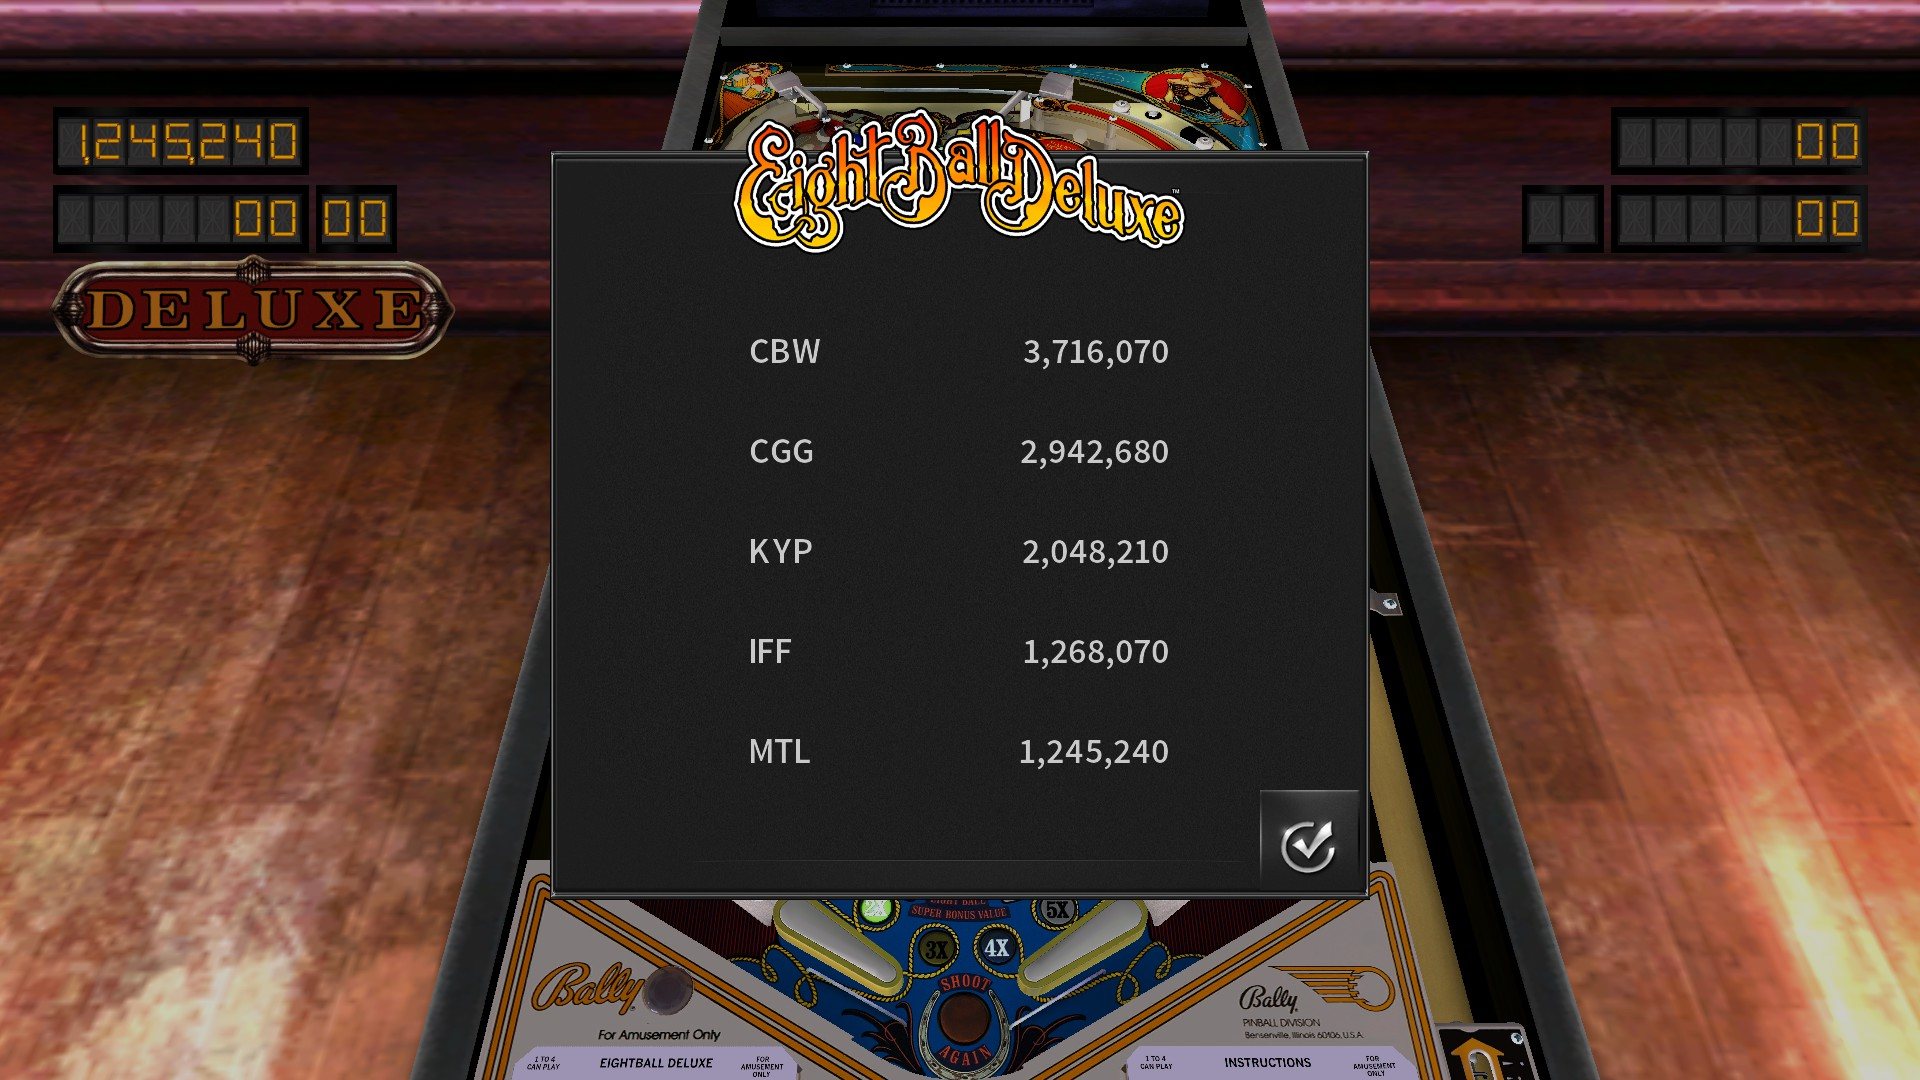 Mantalow: Pinball Arcade: Eight Ball Deluxe (PC) 1,245,240 points on 2016-08-20 01:44:08